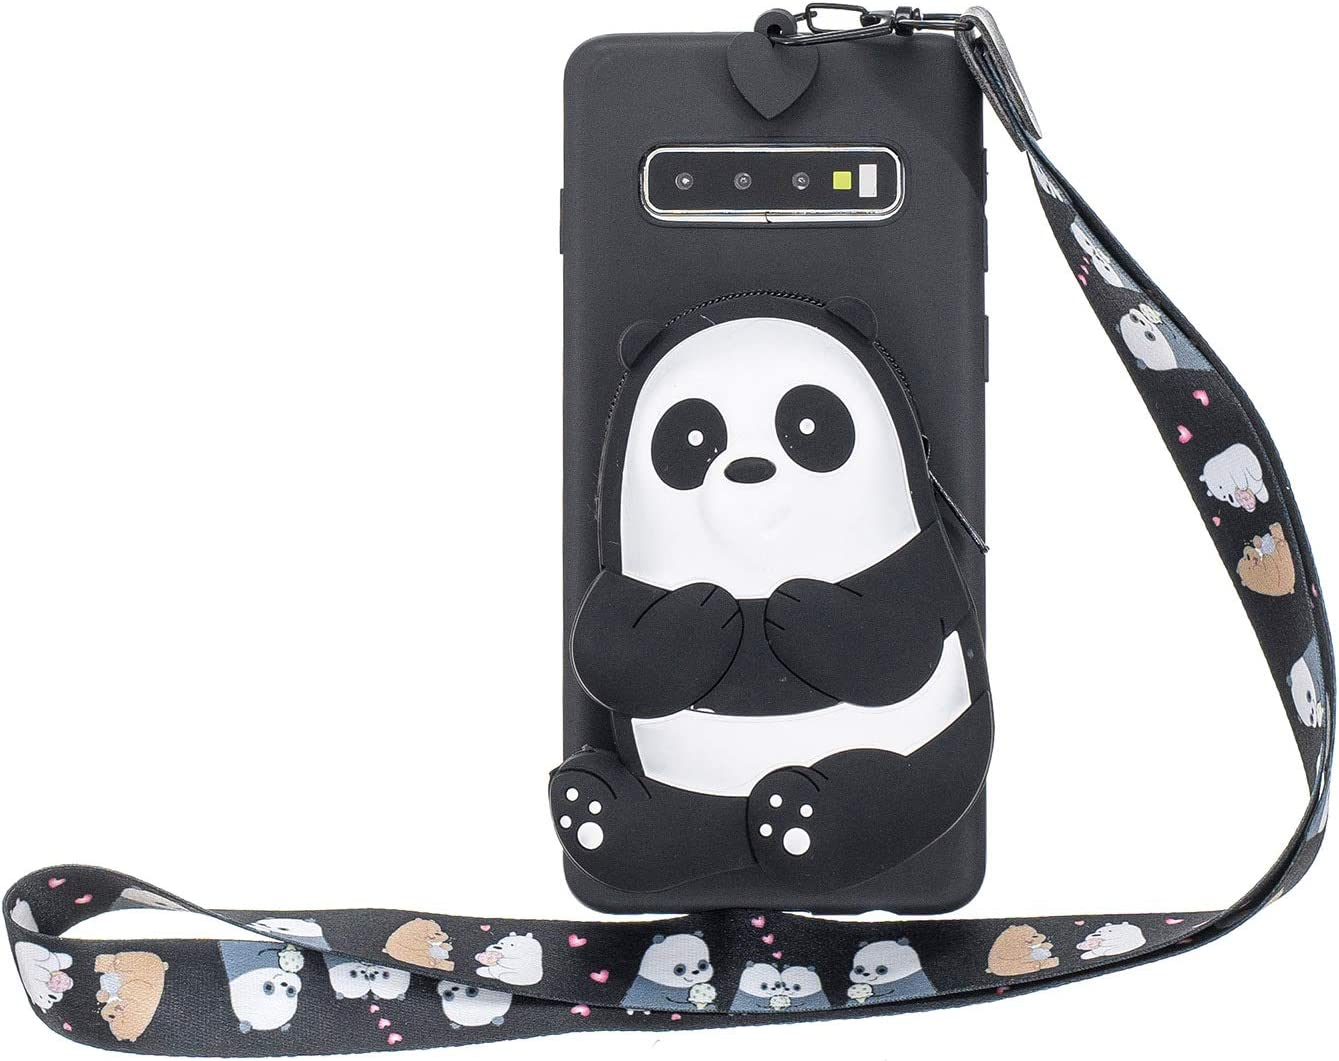 DAMONDY for Samsung Galaxy S10 Case,3D Cartoon Cute Pocket Purse Zipper Wallet Stand Holder Cover Soft Silicone Protective Case with Lanyard Strap for Samsung Galaxy S10 2019-Stripe Panda